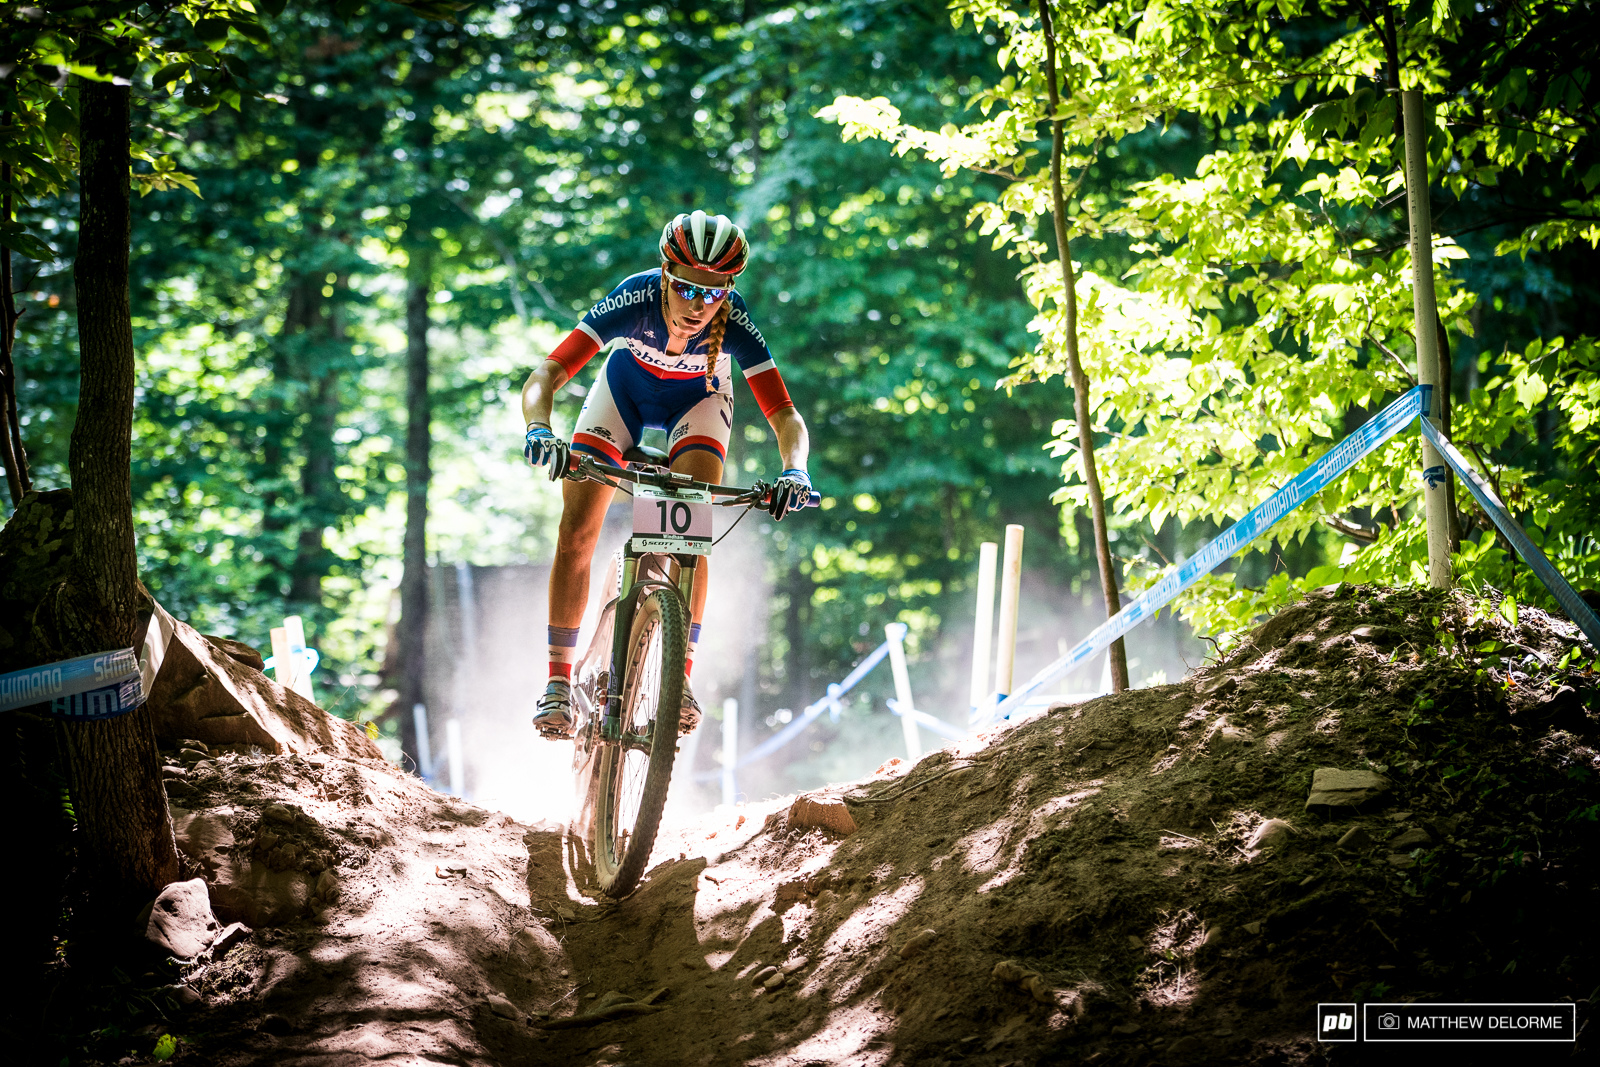 Pauline Ferrand Prevot owned this race. It was a well deserved win.